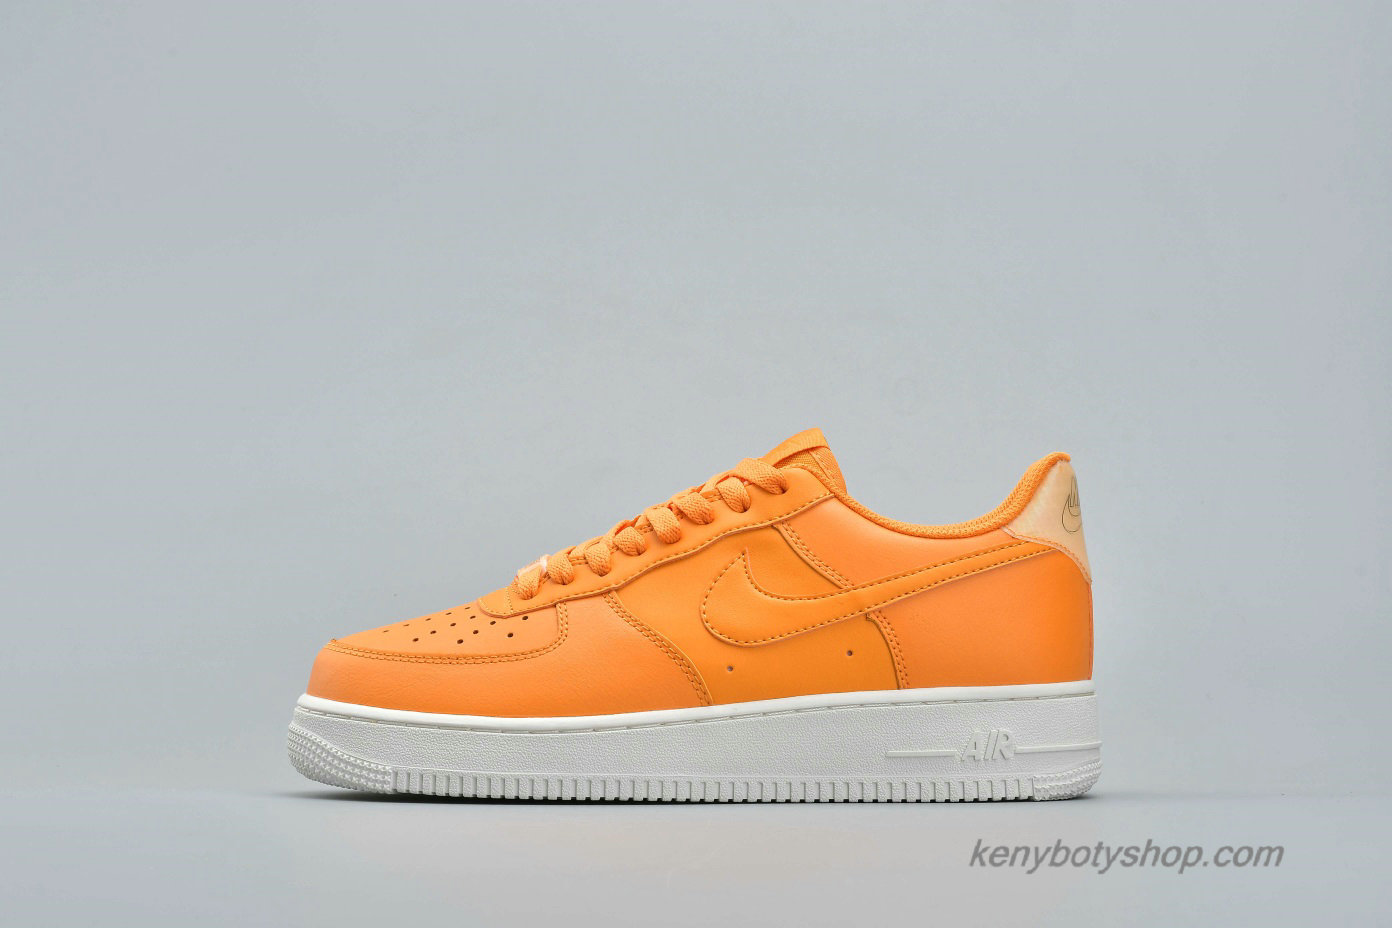 Boty Nike Air Force 1 Low QS Unisex AO2132-801 (Oranžový / Off-White)